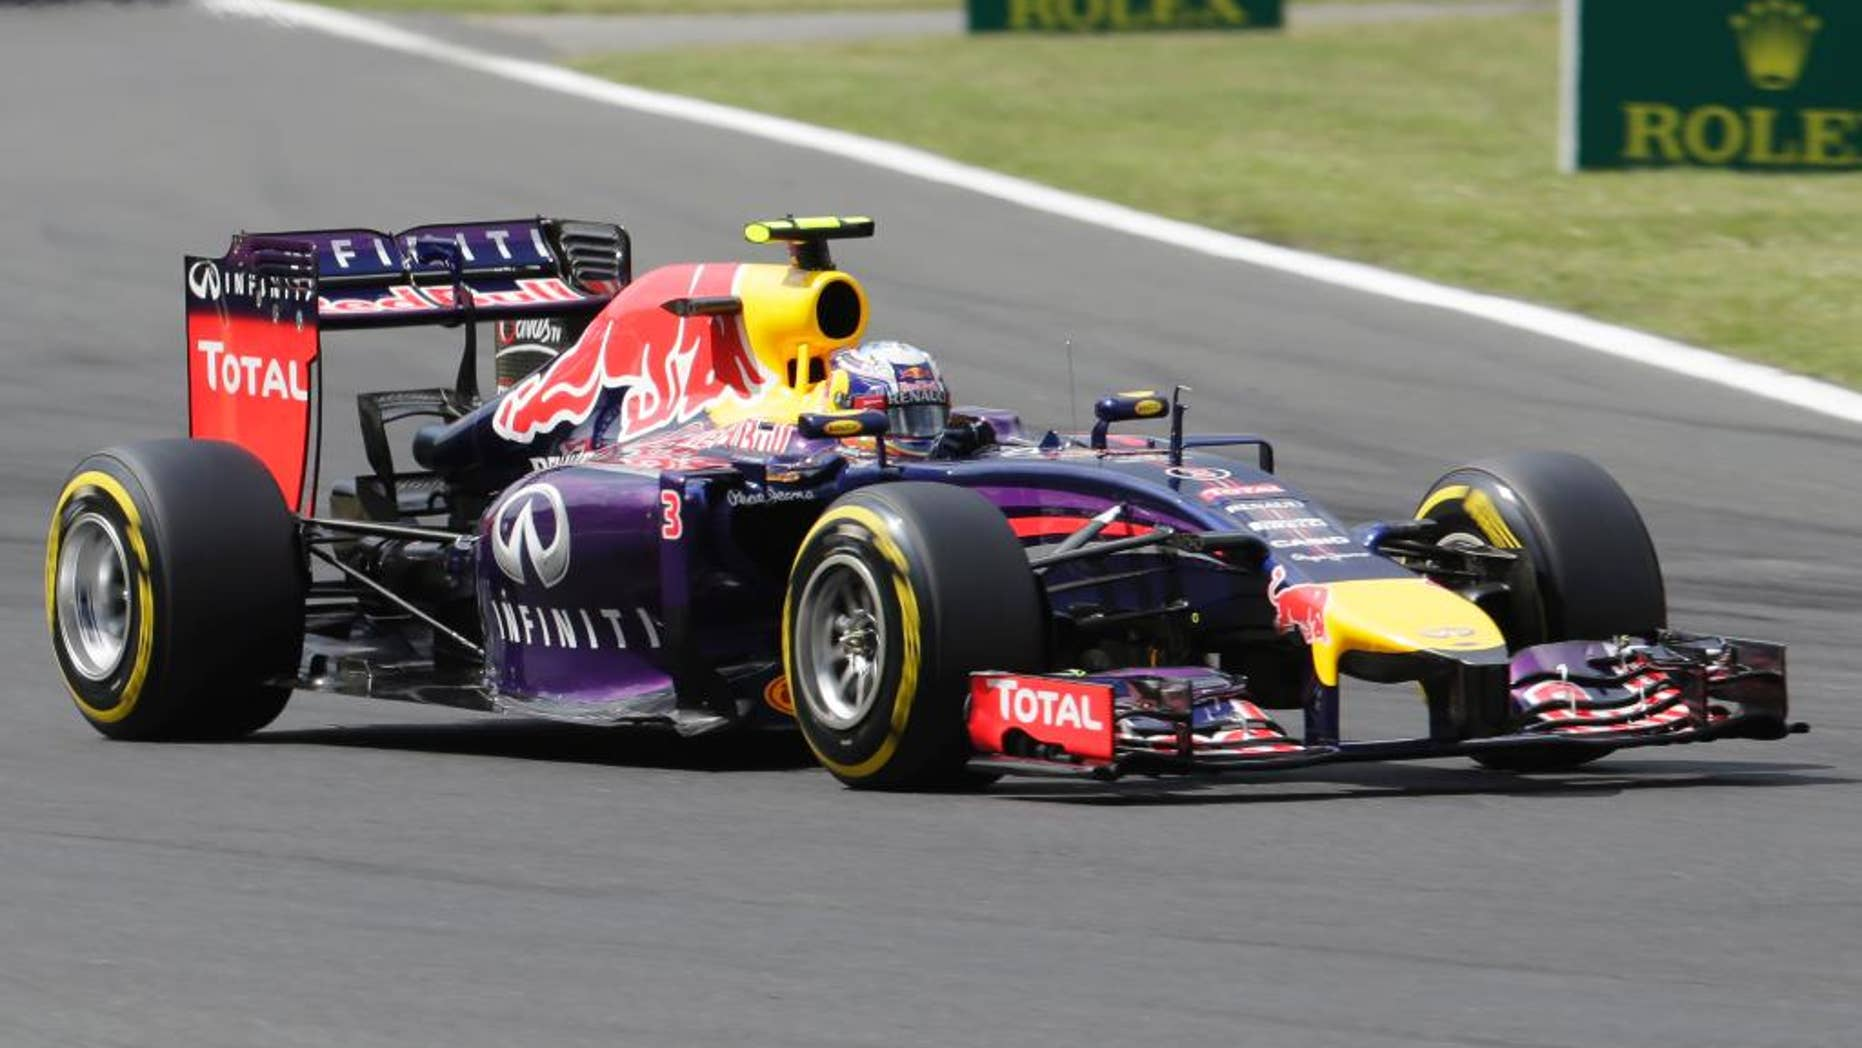 Red Bull driver Daniel Ricciardo of Australia steers his car during the qualifying of the Hungarian Formula One Grand Prix in Budapest, Hungary, Saturday, July 26, 2014. The Hungarian Grand Prix will be held on Sunday, July 27, 2014. (AP Photo/Petr David Josek)